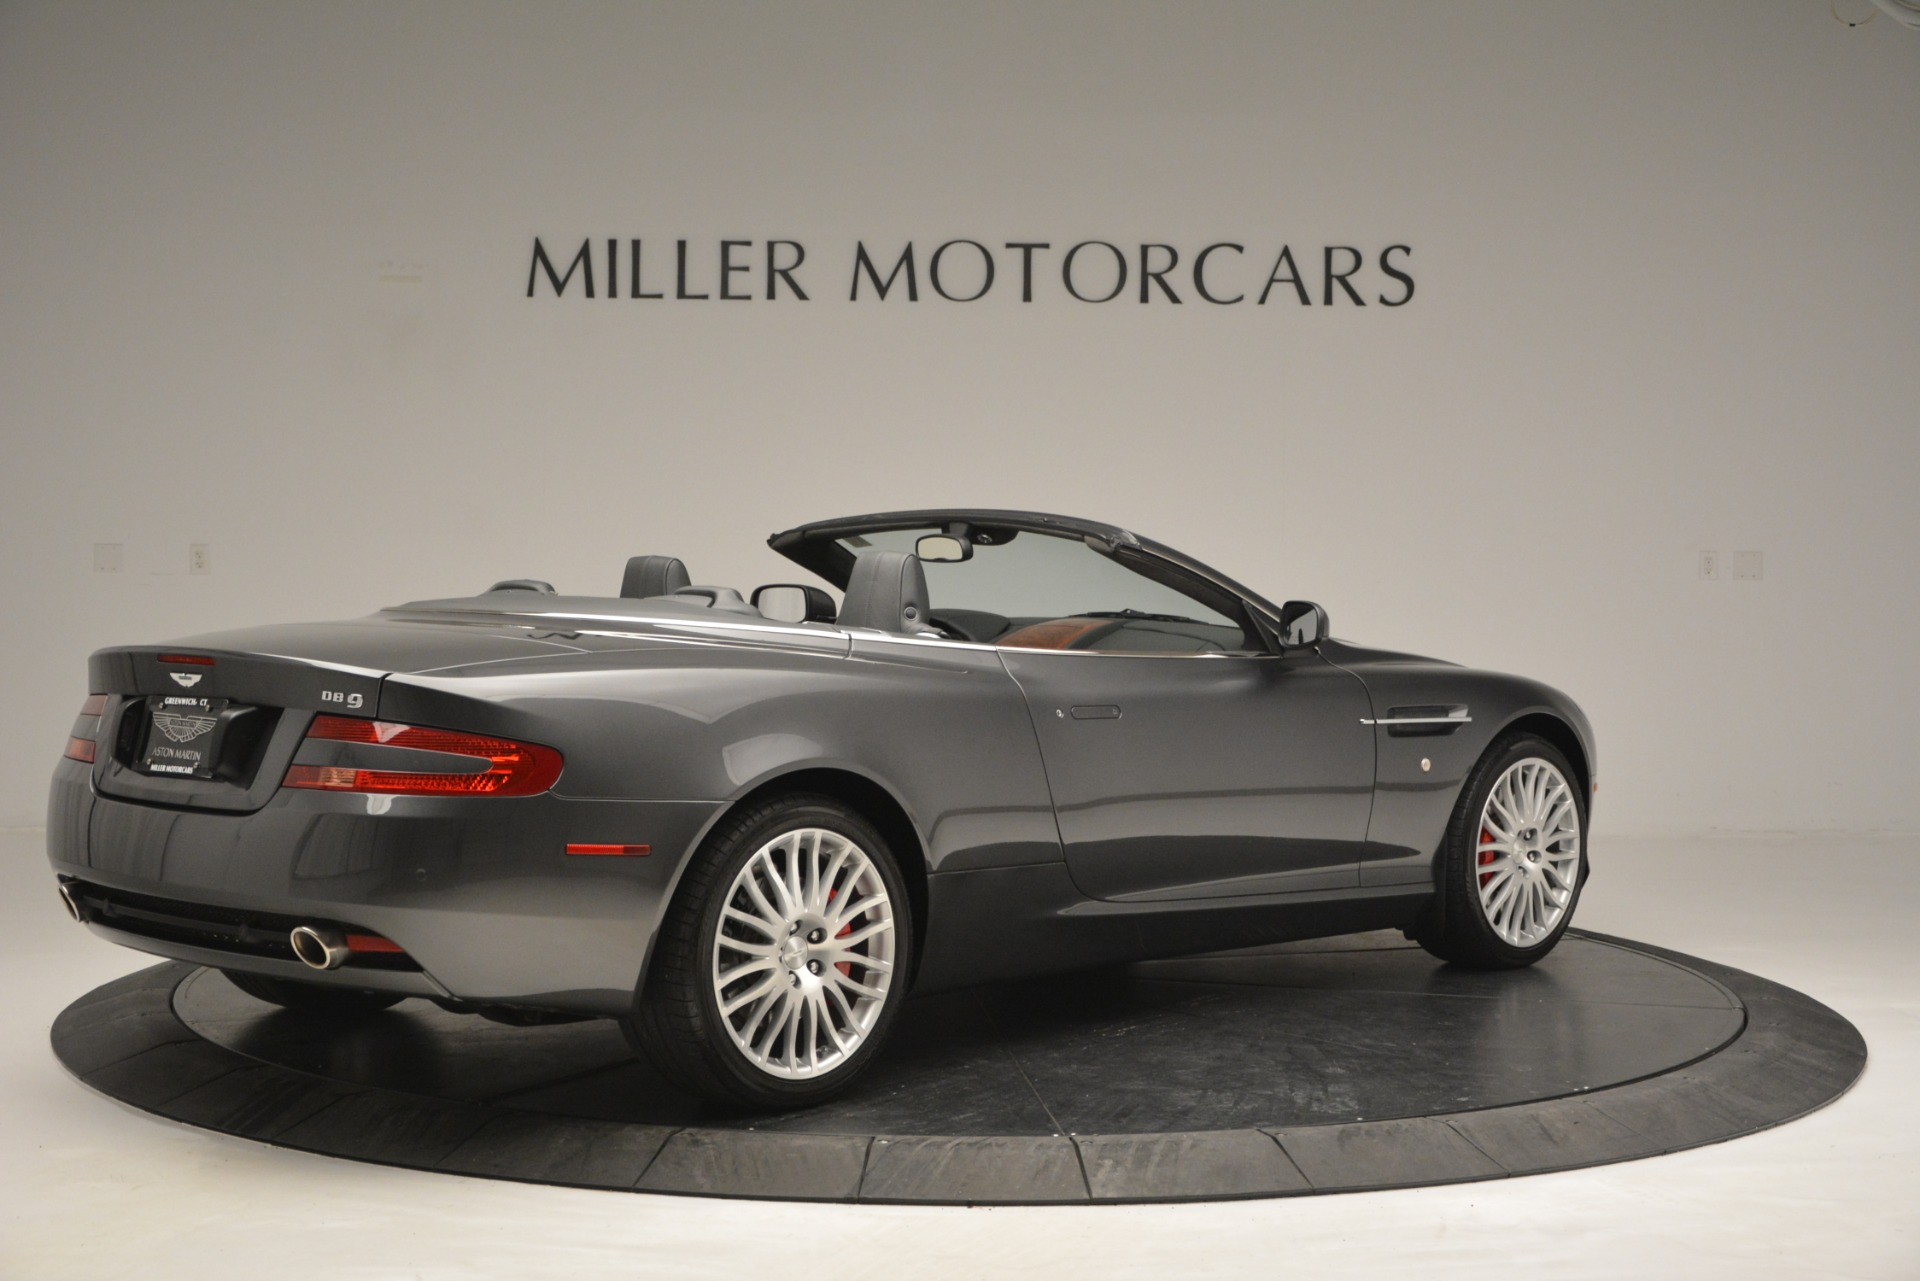 Used 2009 Aston Martin DB9 Convertible For Sale In Westport, CT 2930_p8